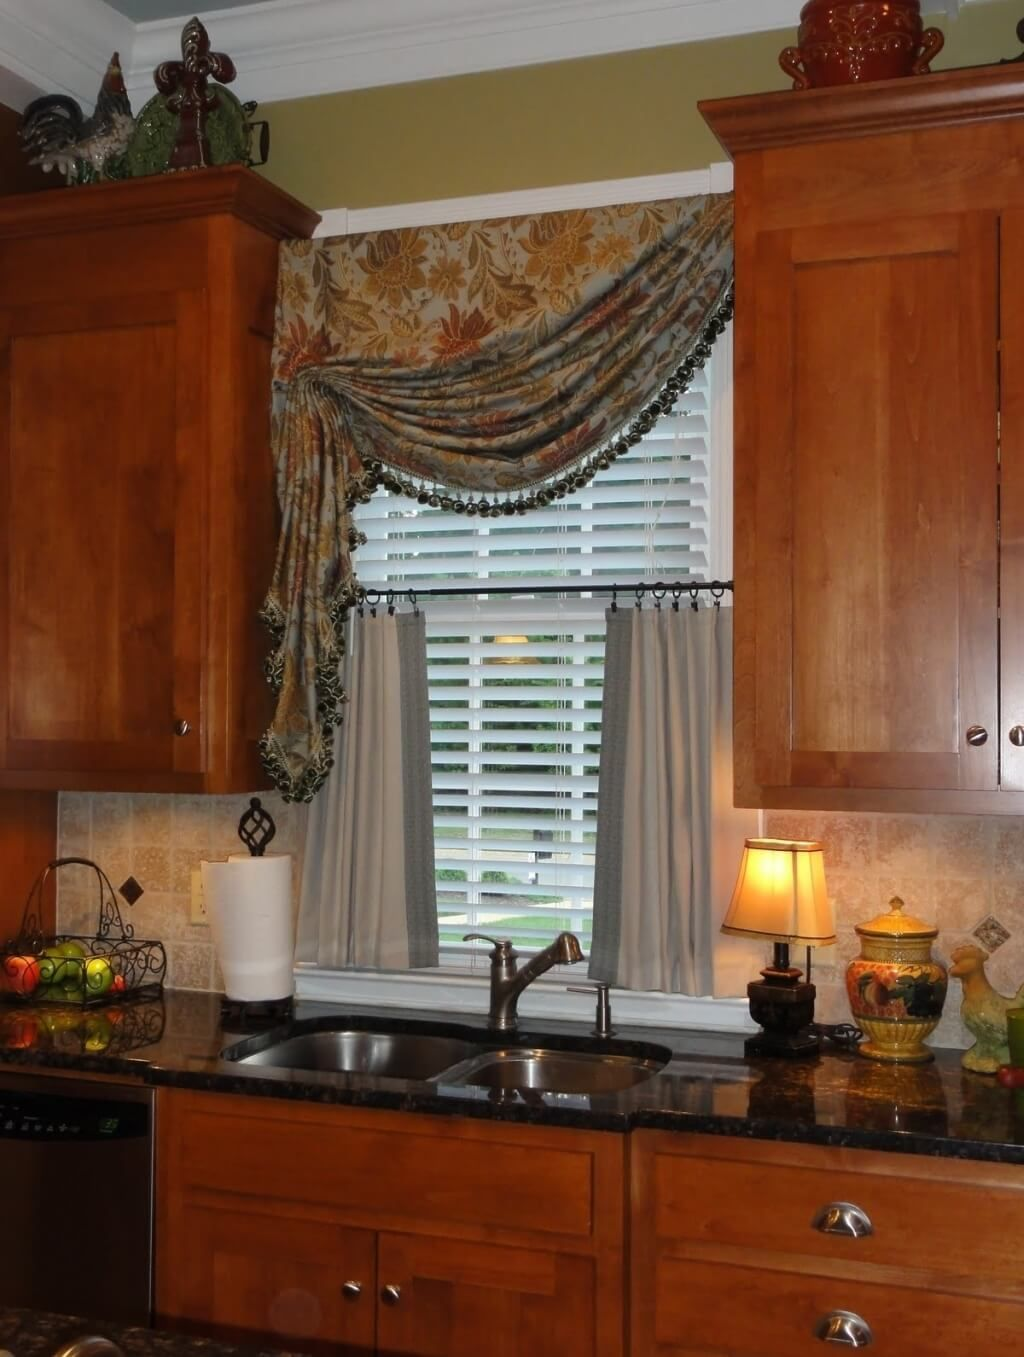 Kitchen window treatments  home decoration diy kitchen nook window treatment ideas things to